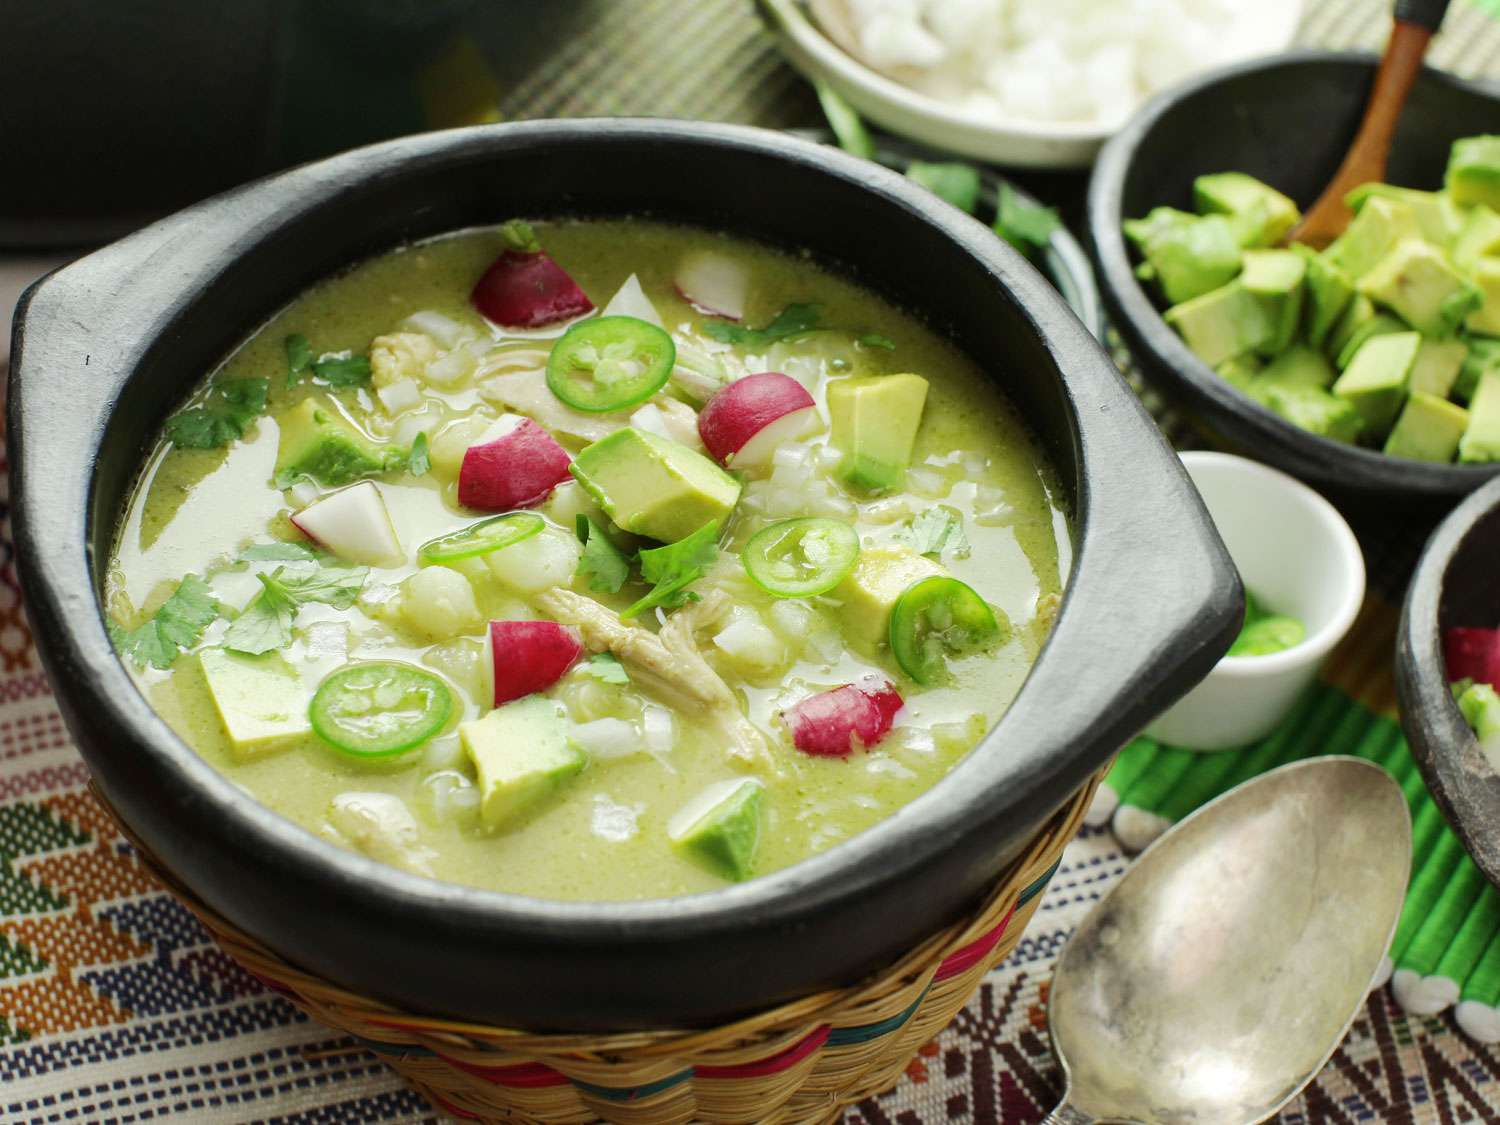 20170123-pozole-verde-chicken-mexican-soup-hominy-green-11.jpg